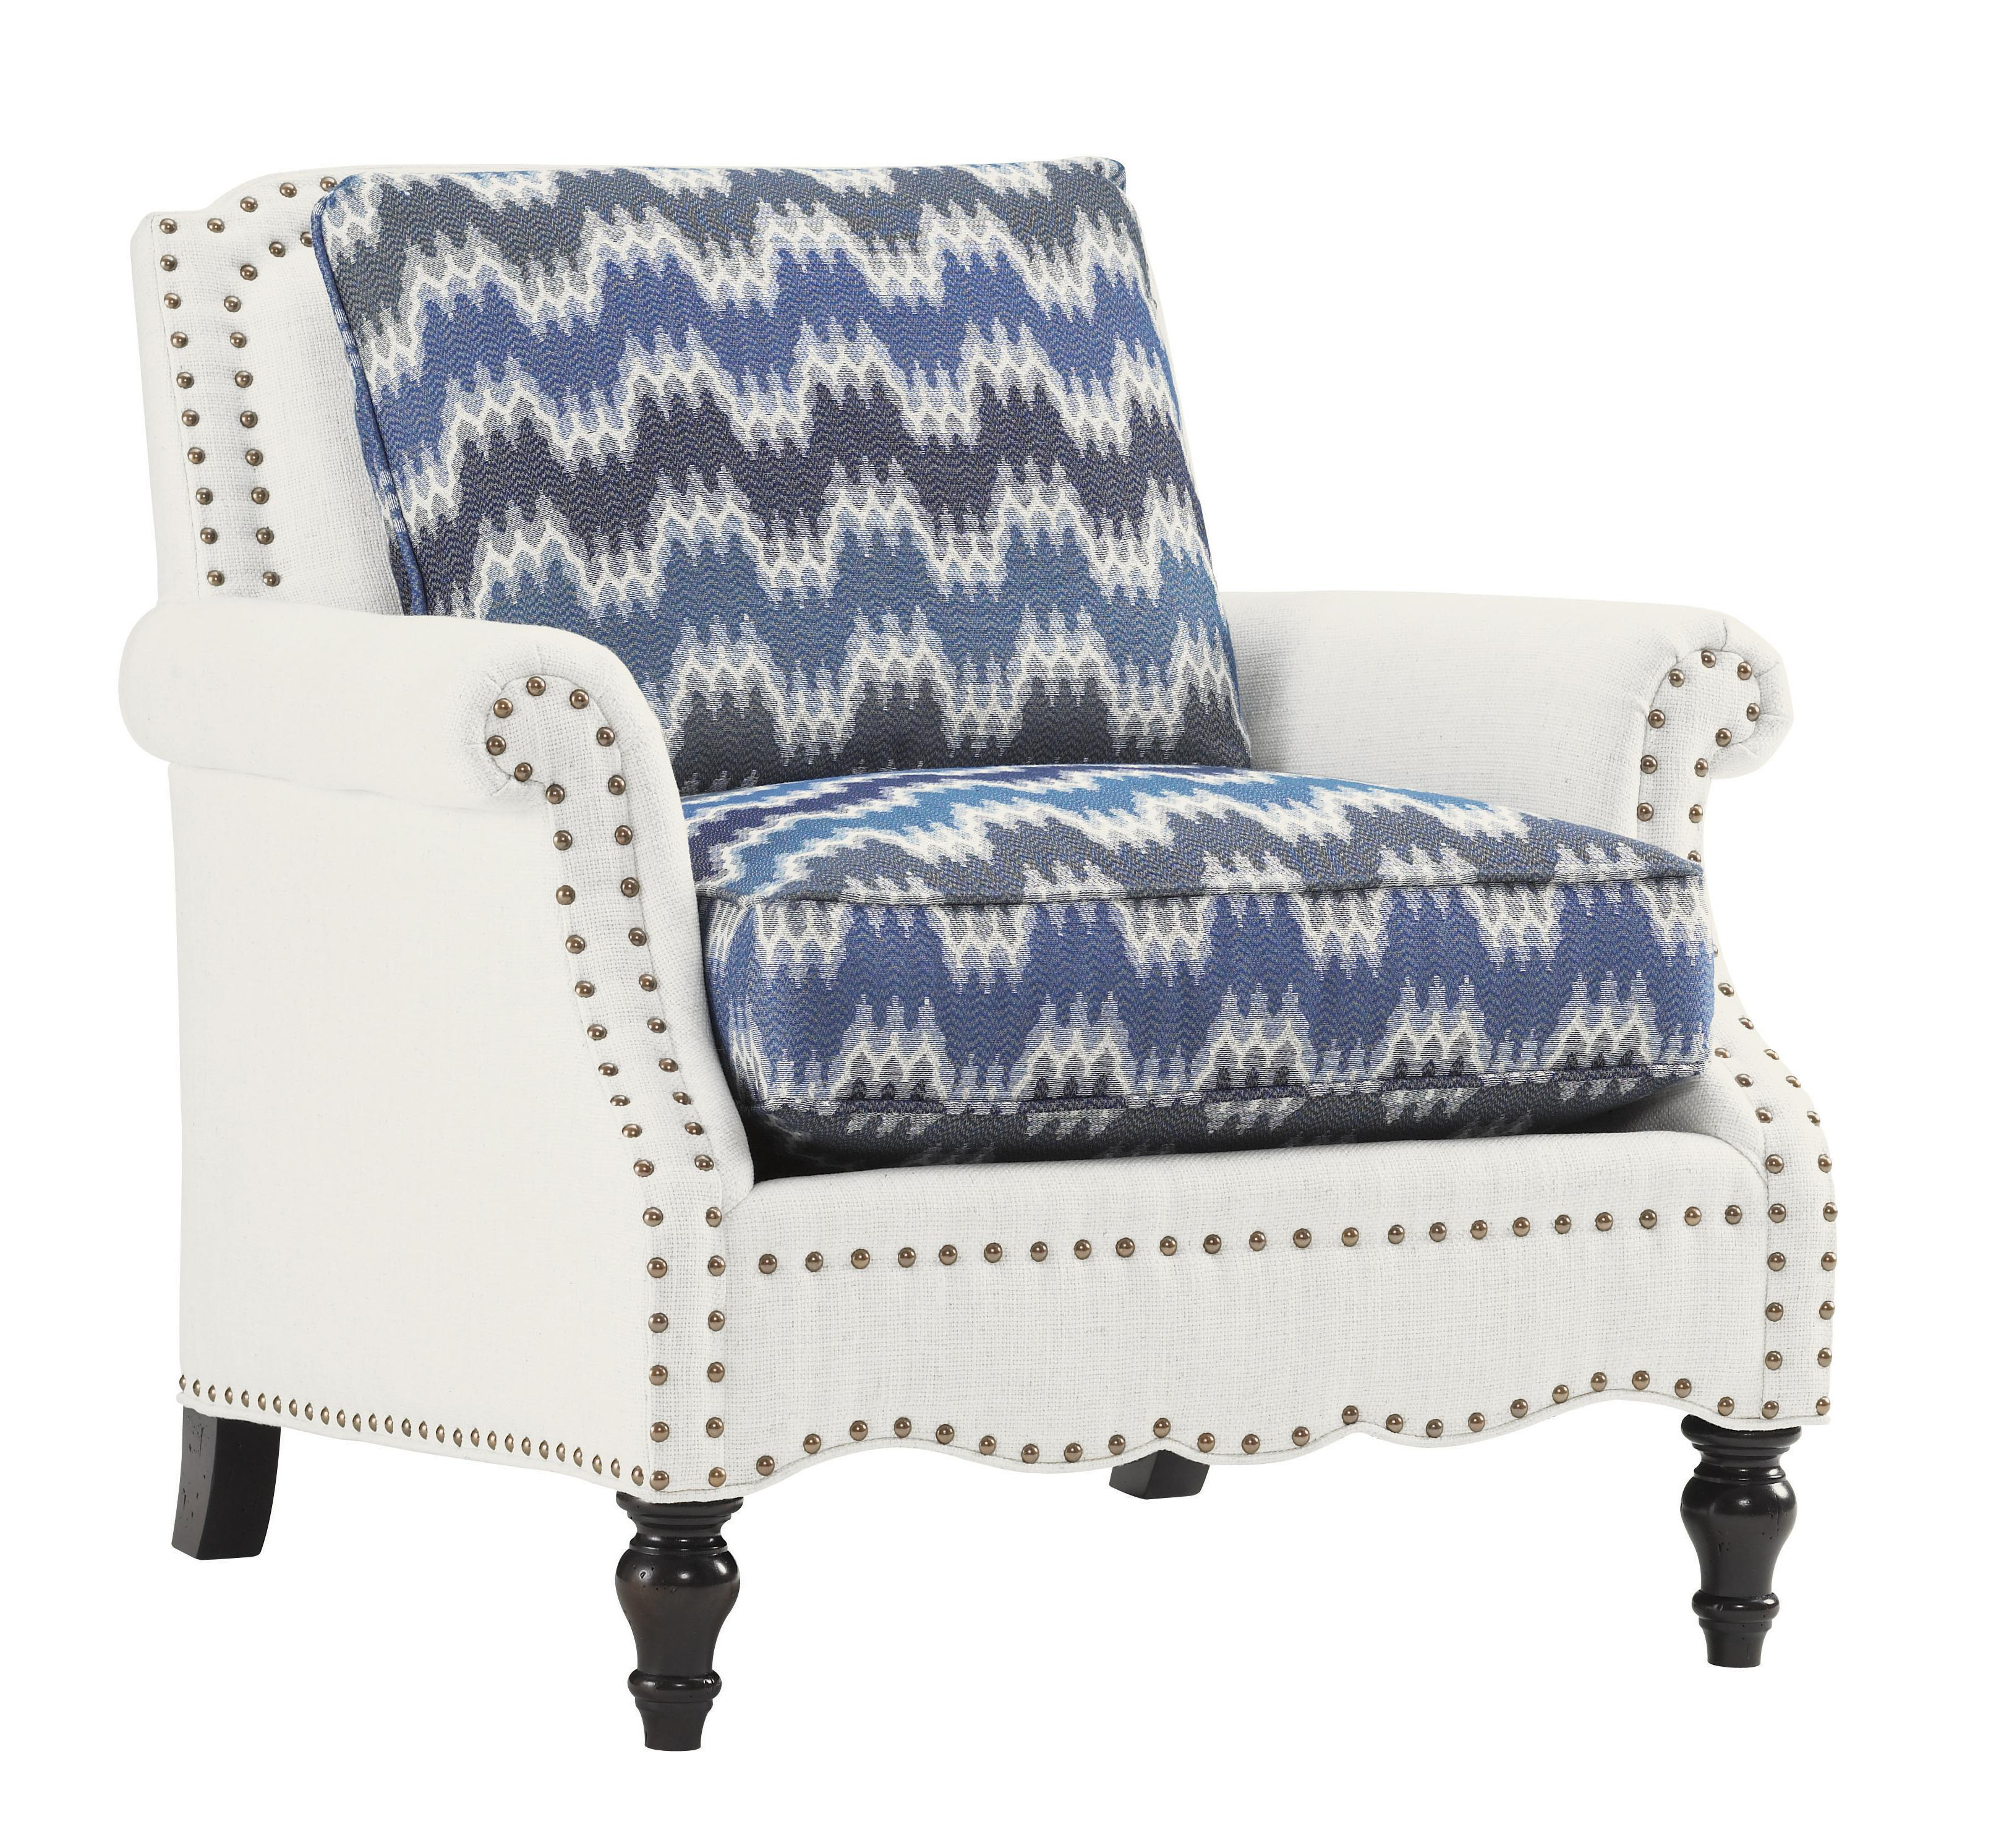 Tommy Bahama Upholstery Belgrave Chair by Tommy Bahama Home at Baer's Furniture